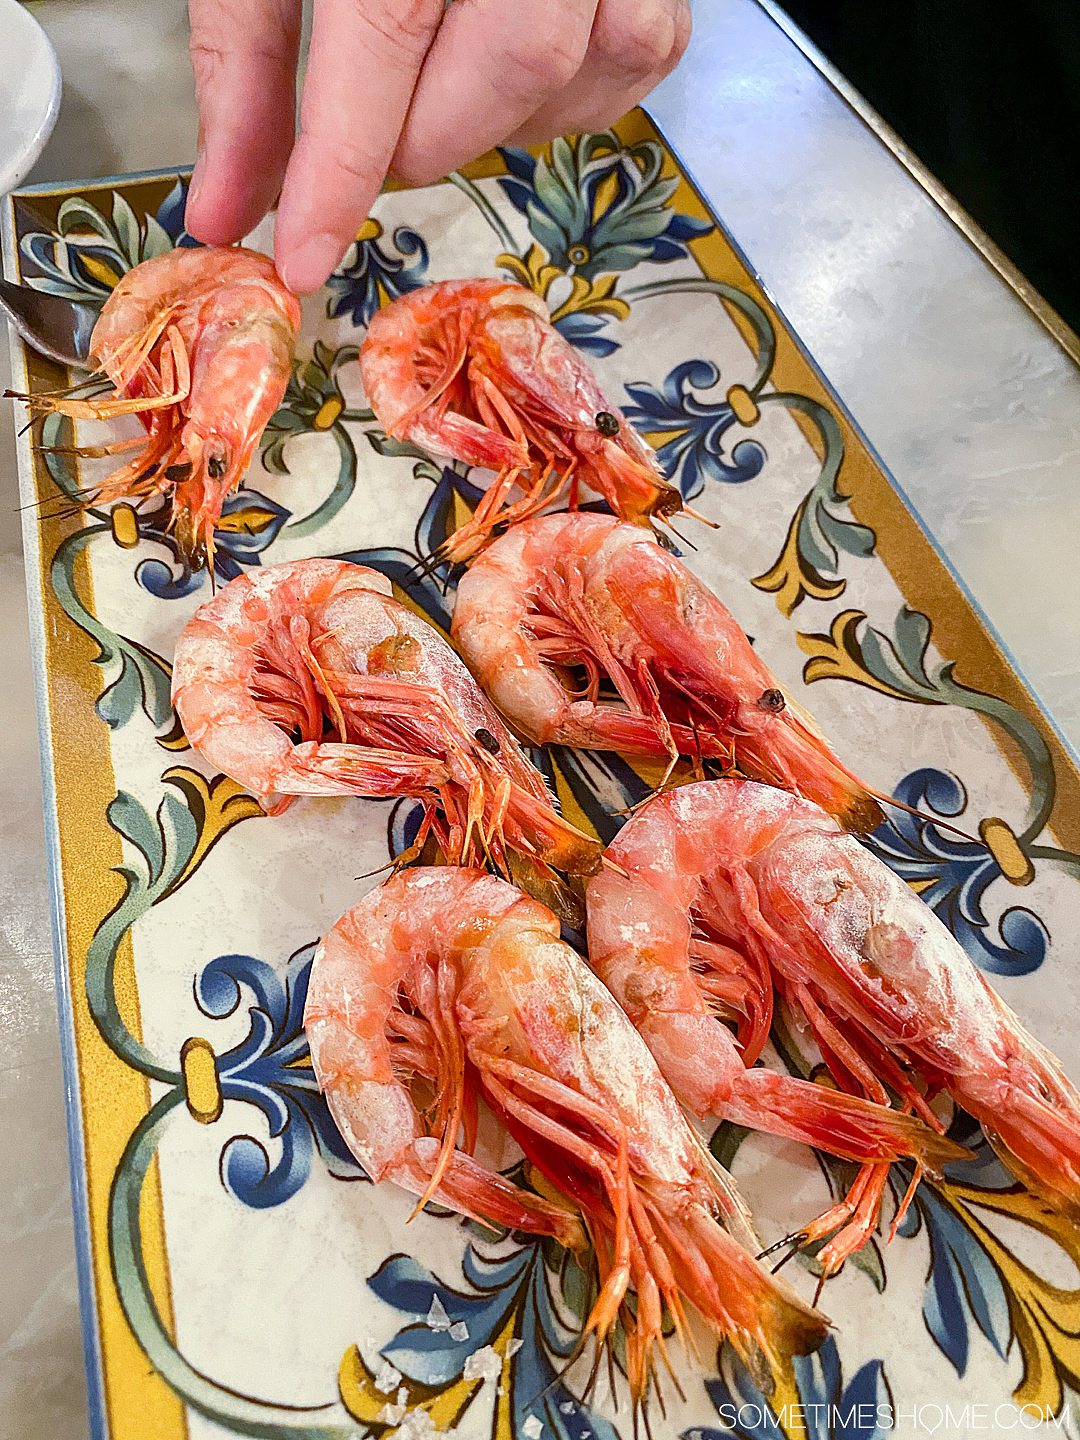 cooked prawns in shell on a plate in Barcelona